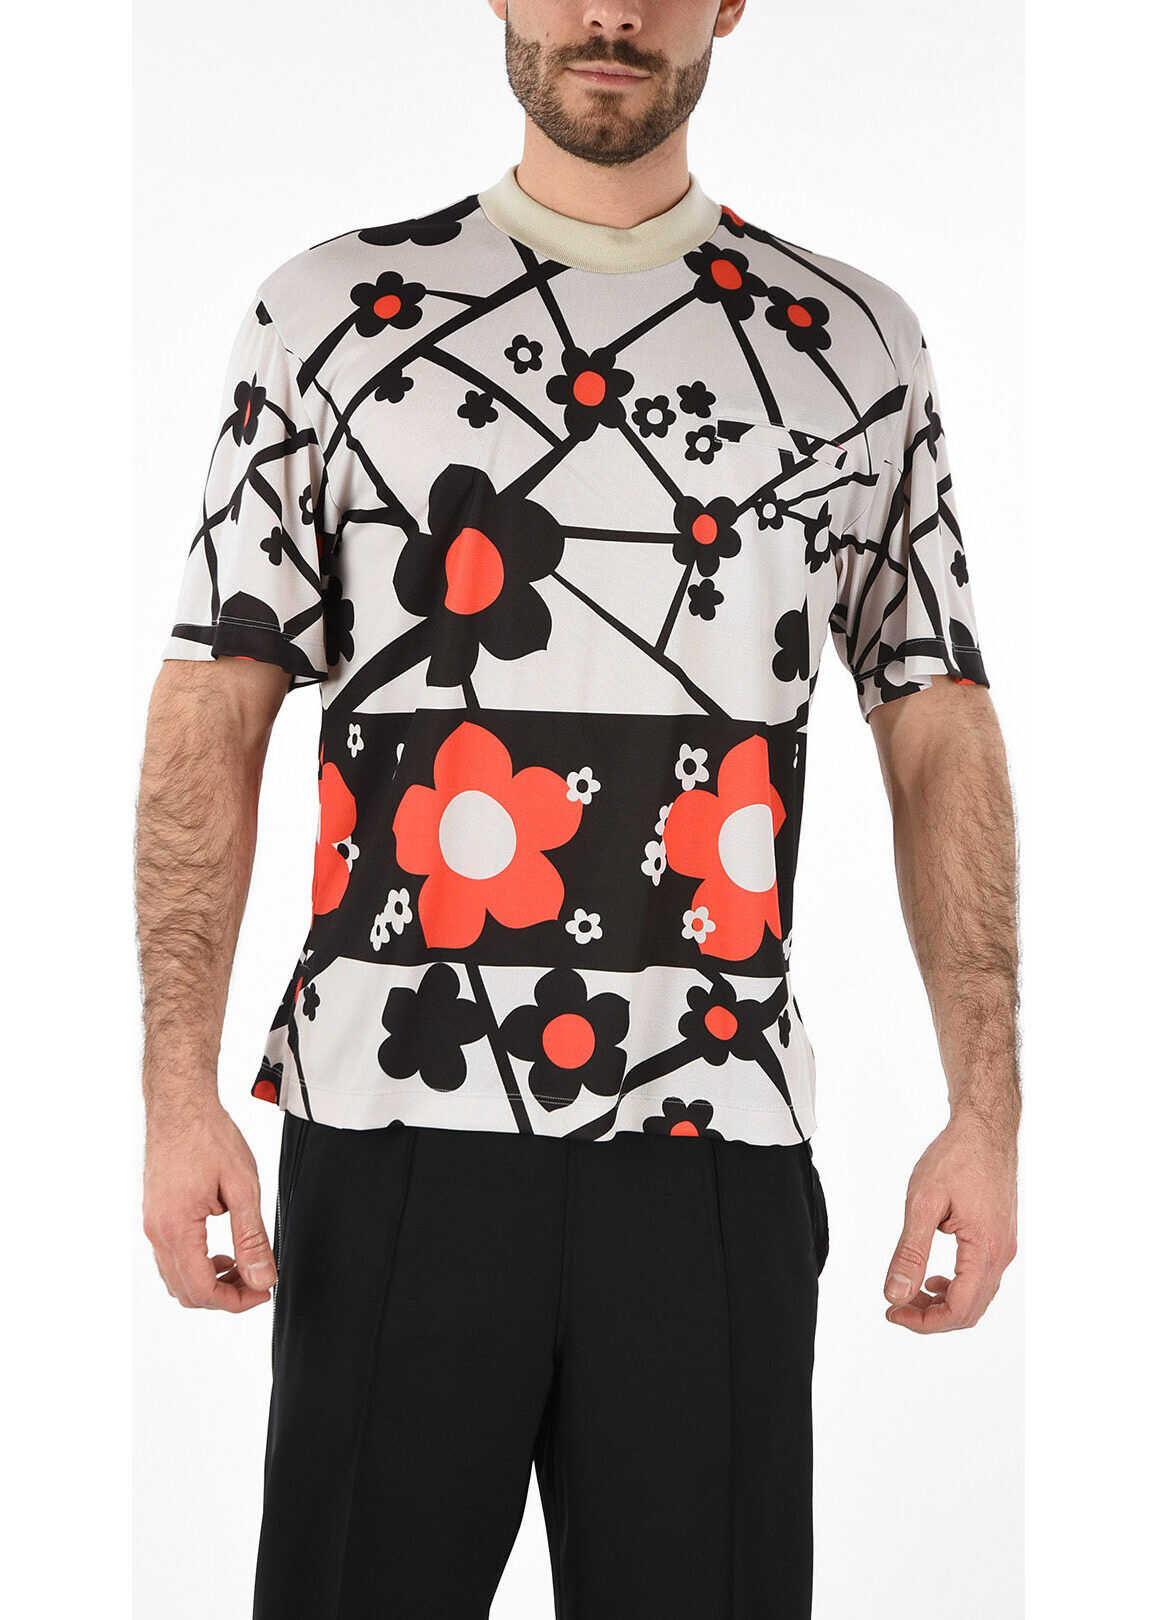 MM10 Nylon T-Shirt with Floral Print